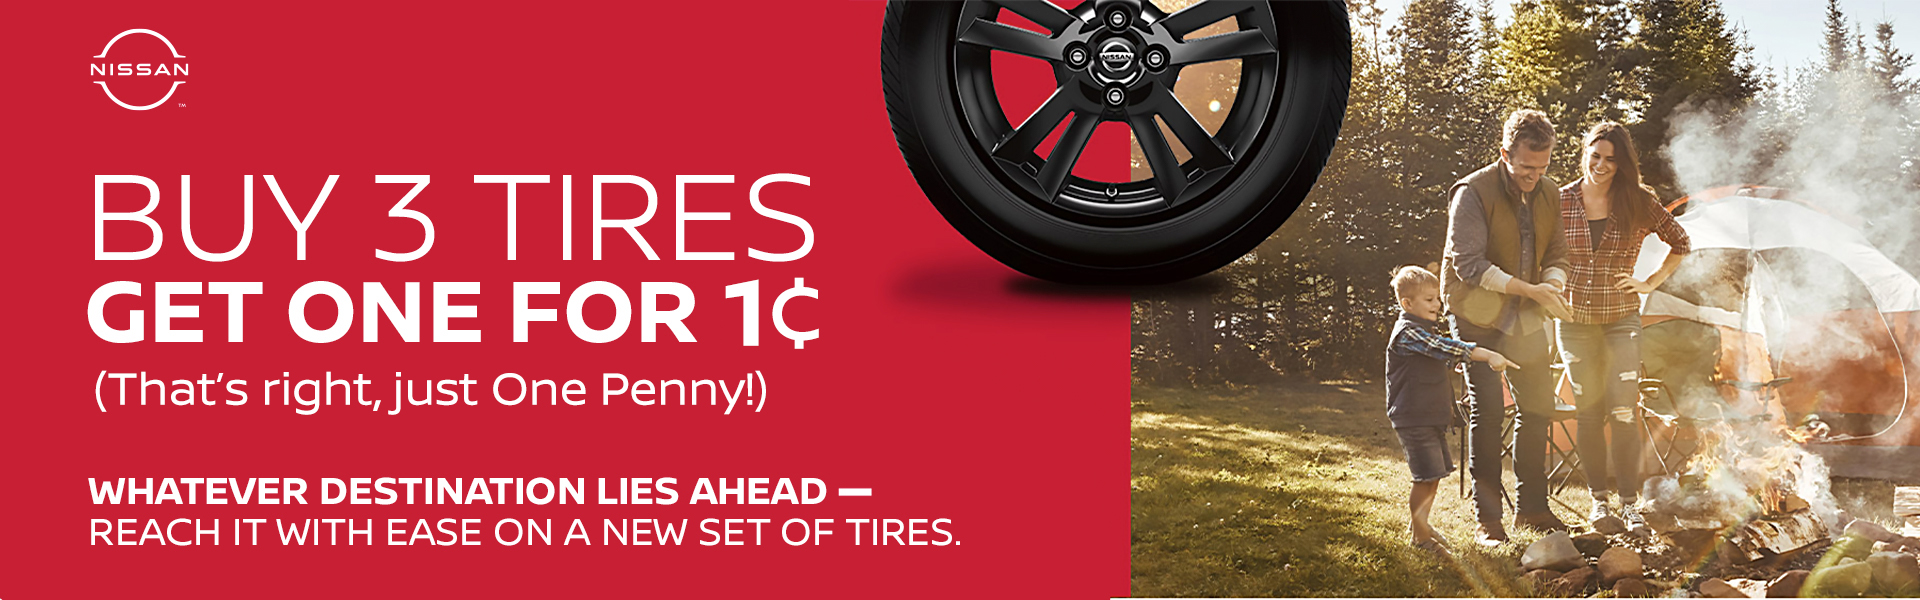 Buy 3 Tires, Get the 4th for 1¢